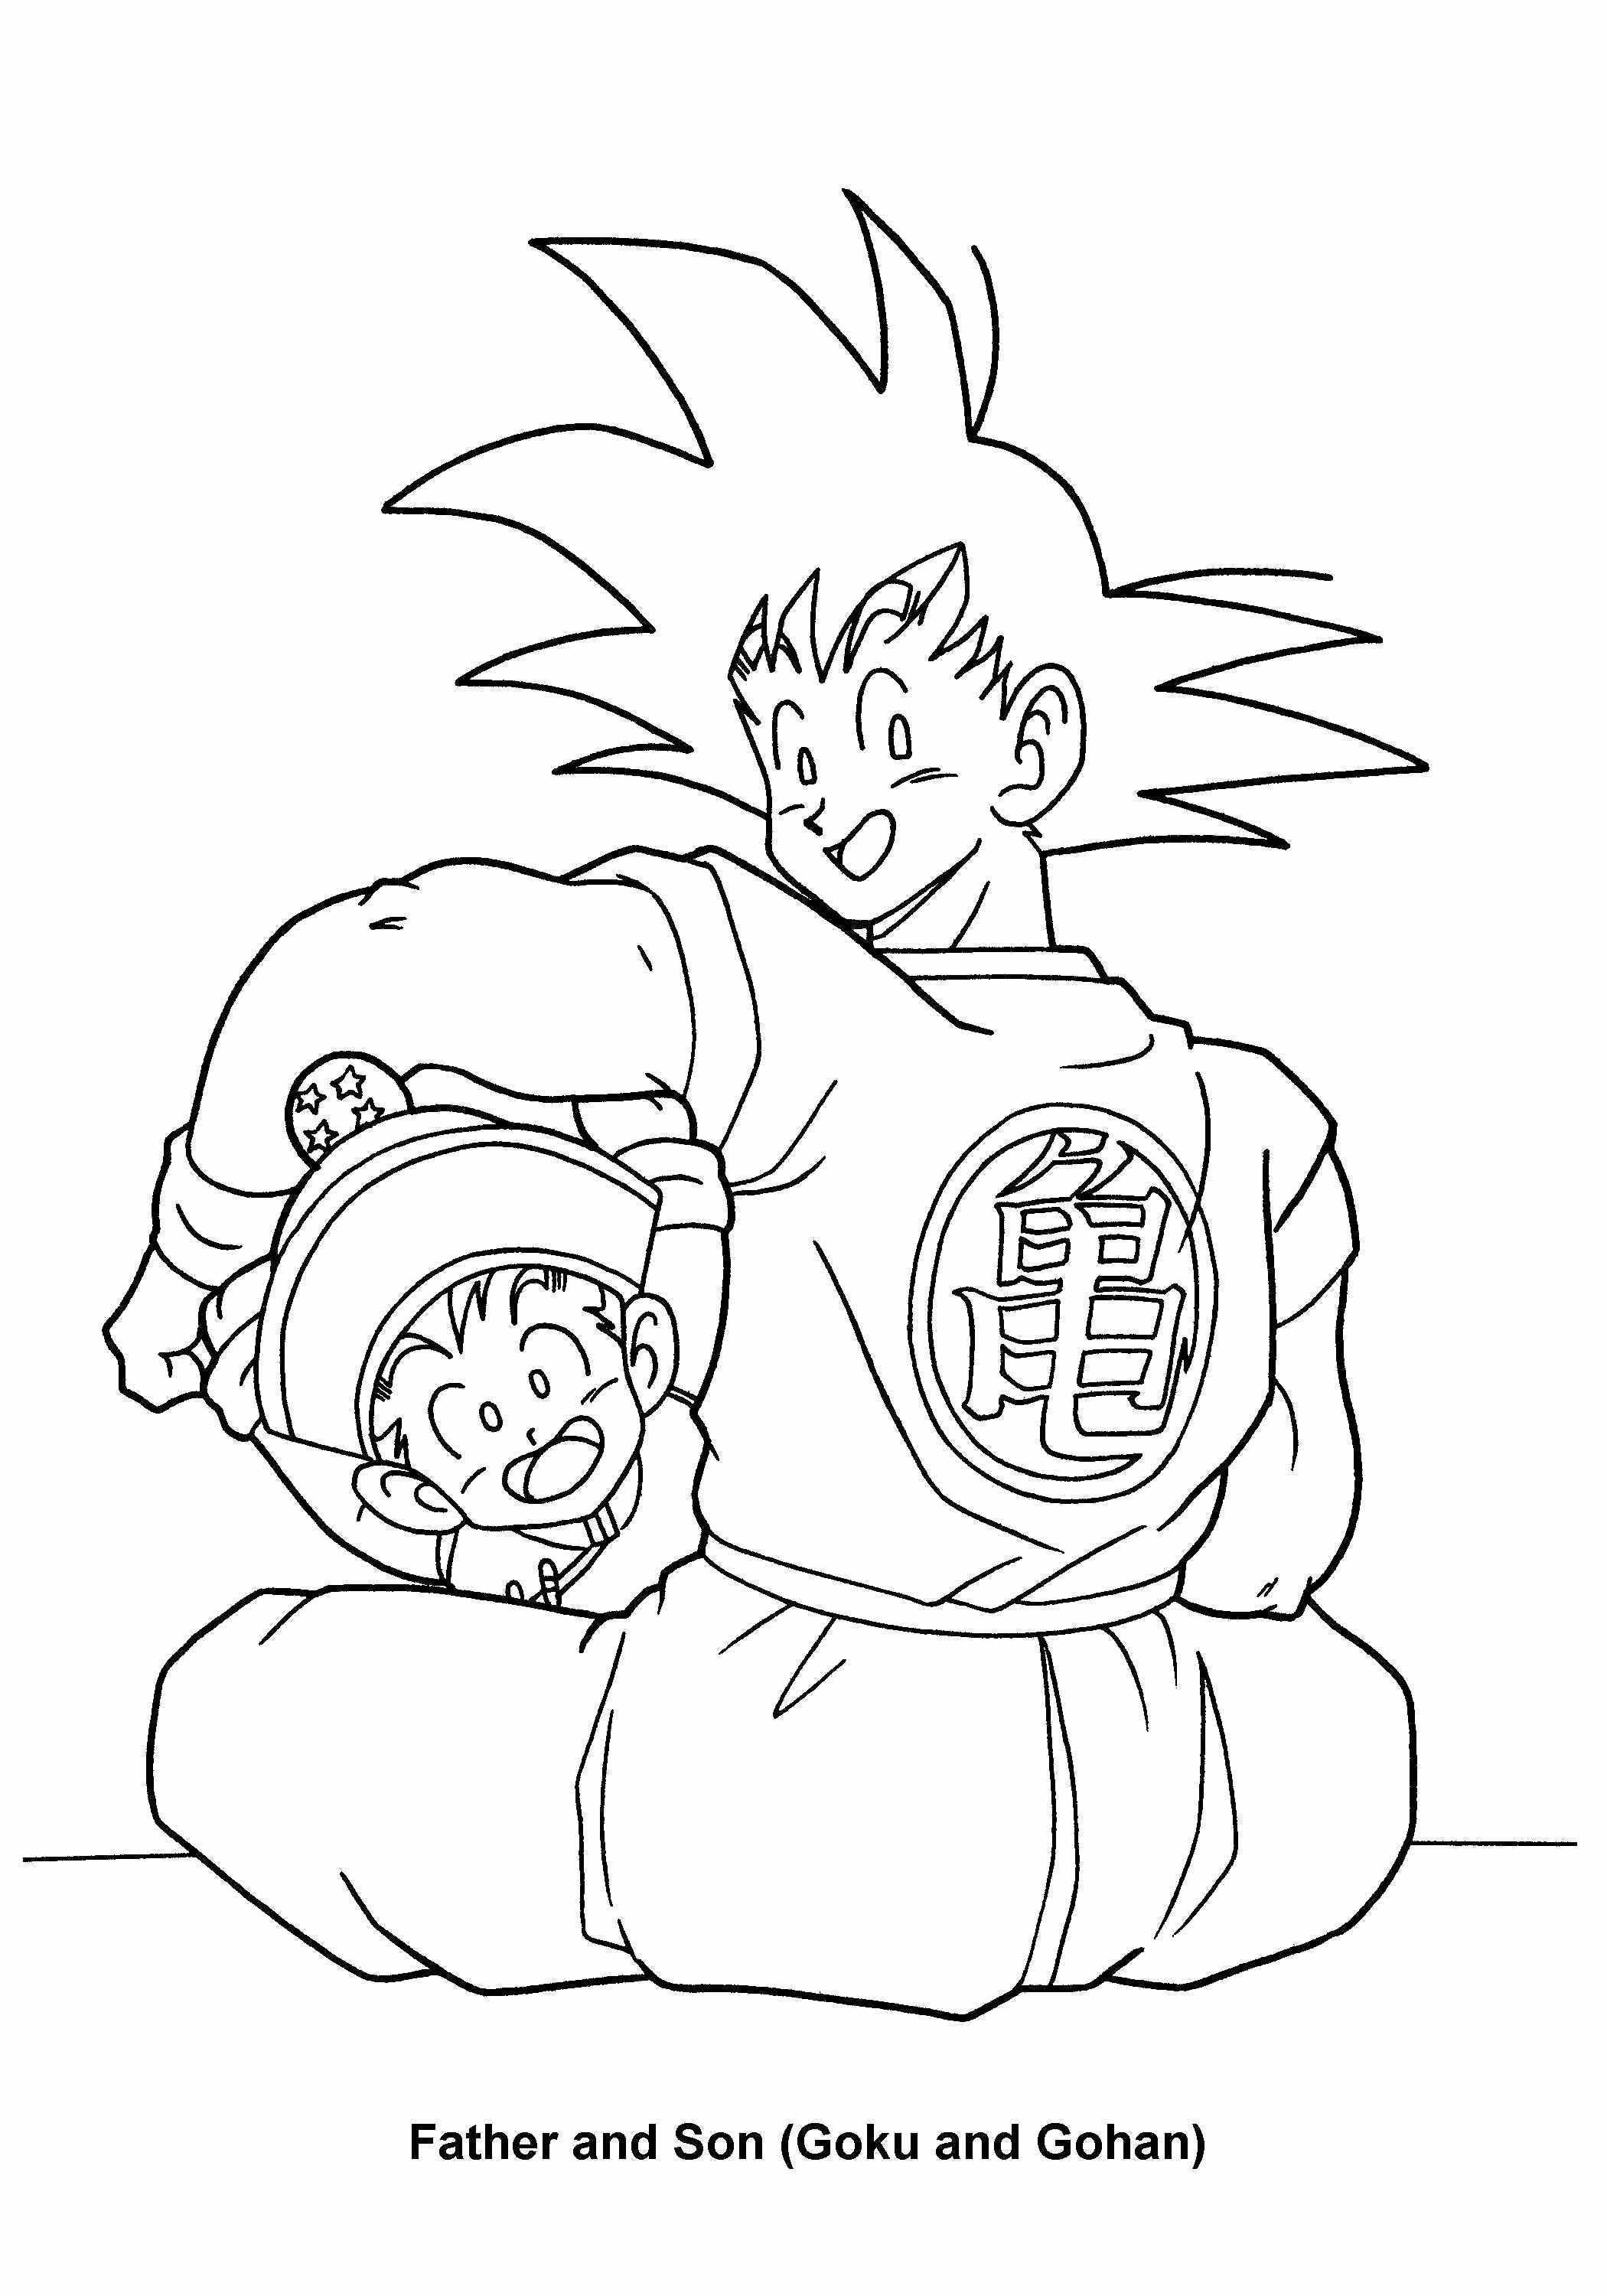 Dragon Ball Z Coloring Pages Printable | manga coloring pages ...